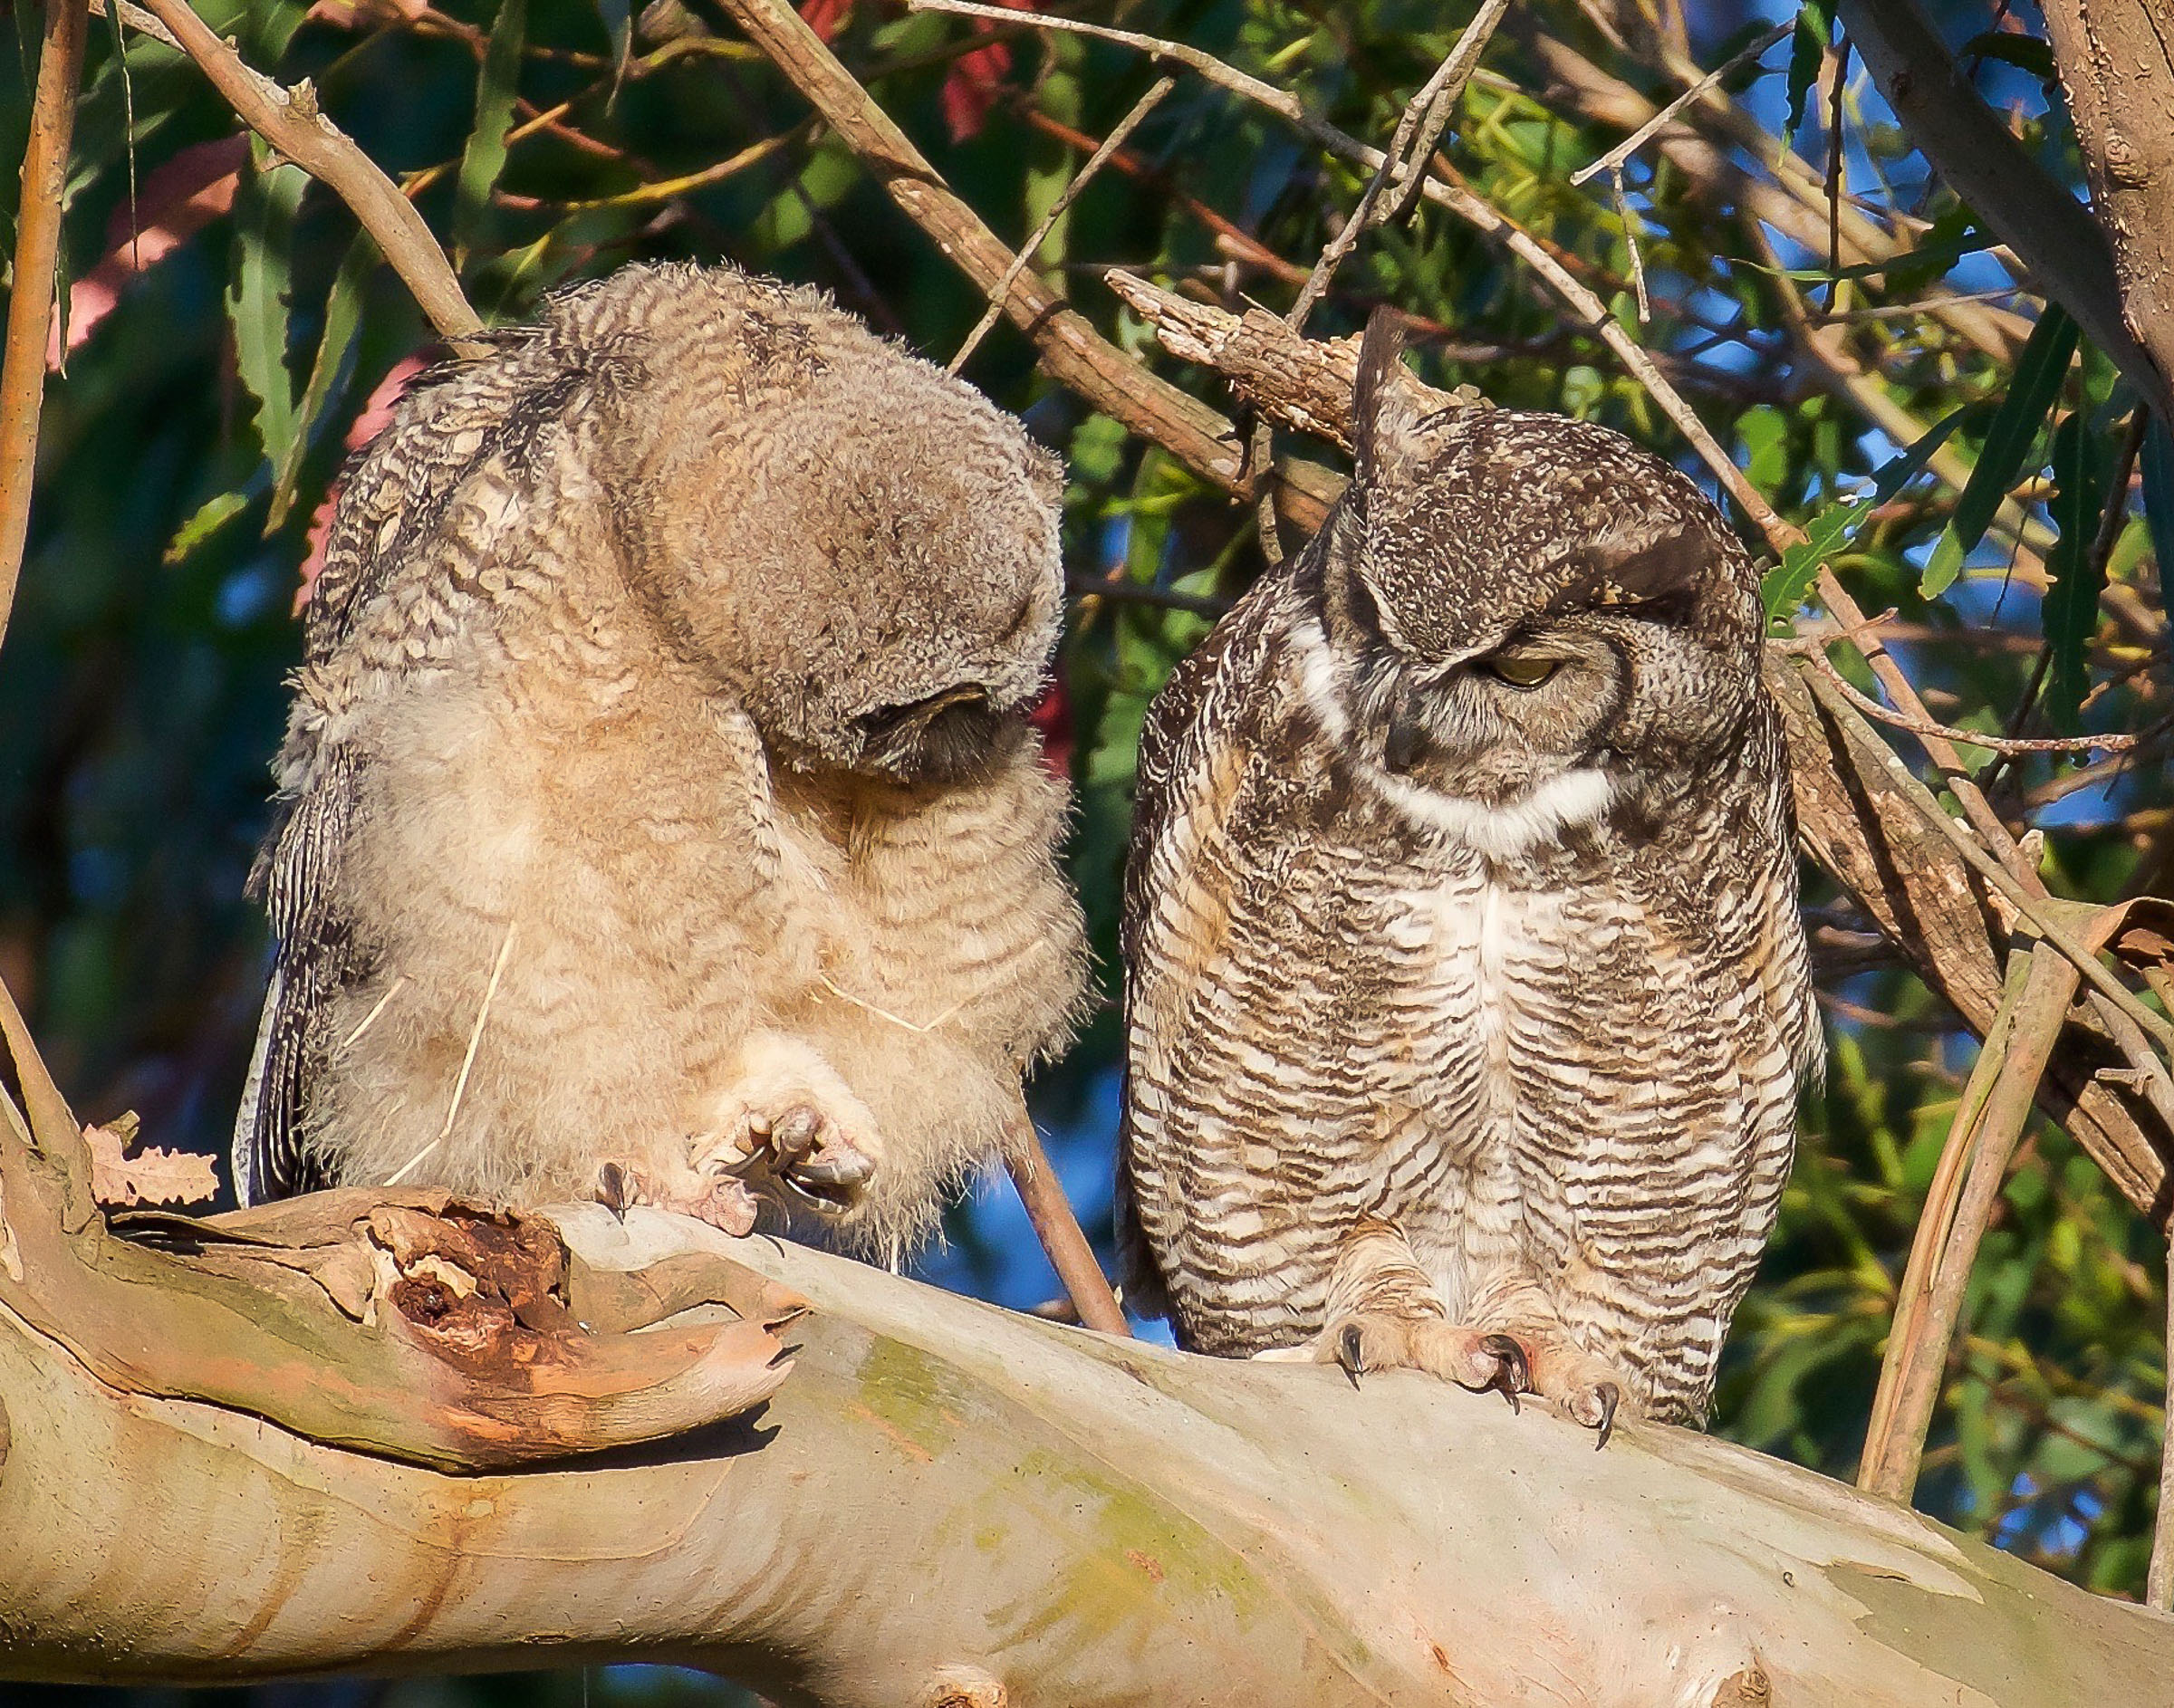 mother-owl-and-owlet-on-branch-grooming-8.jpg